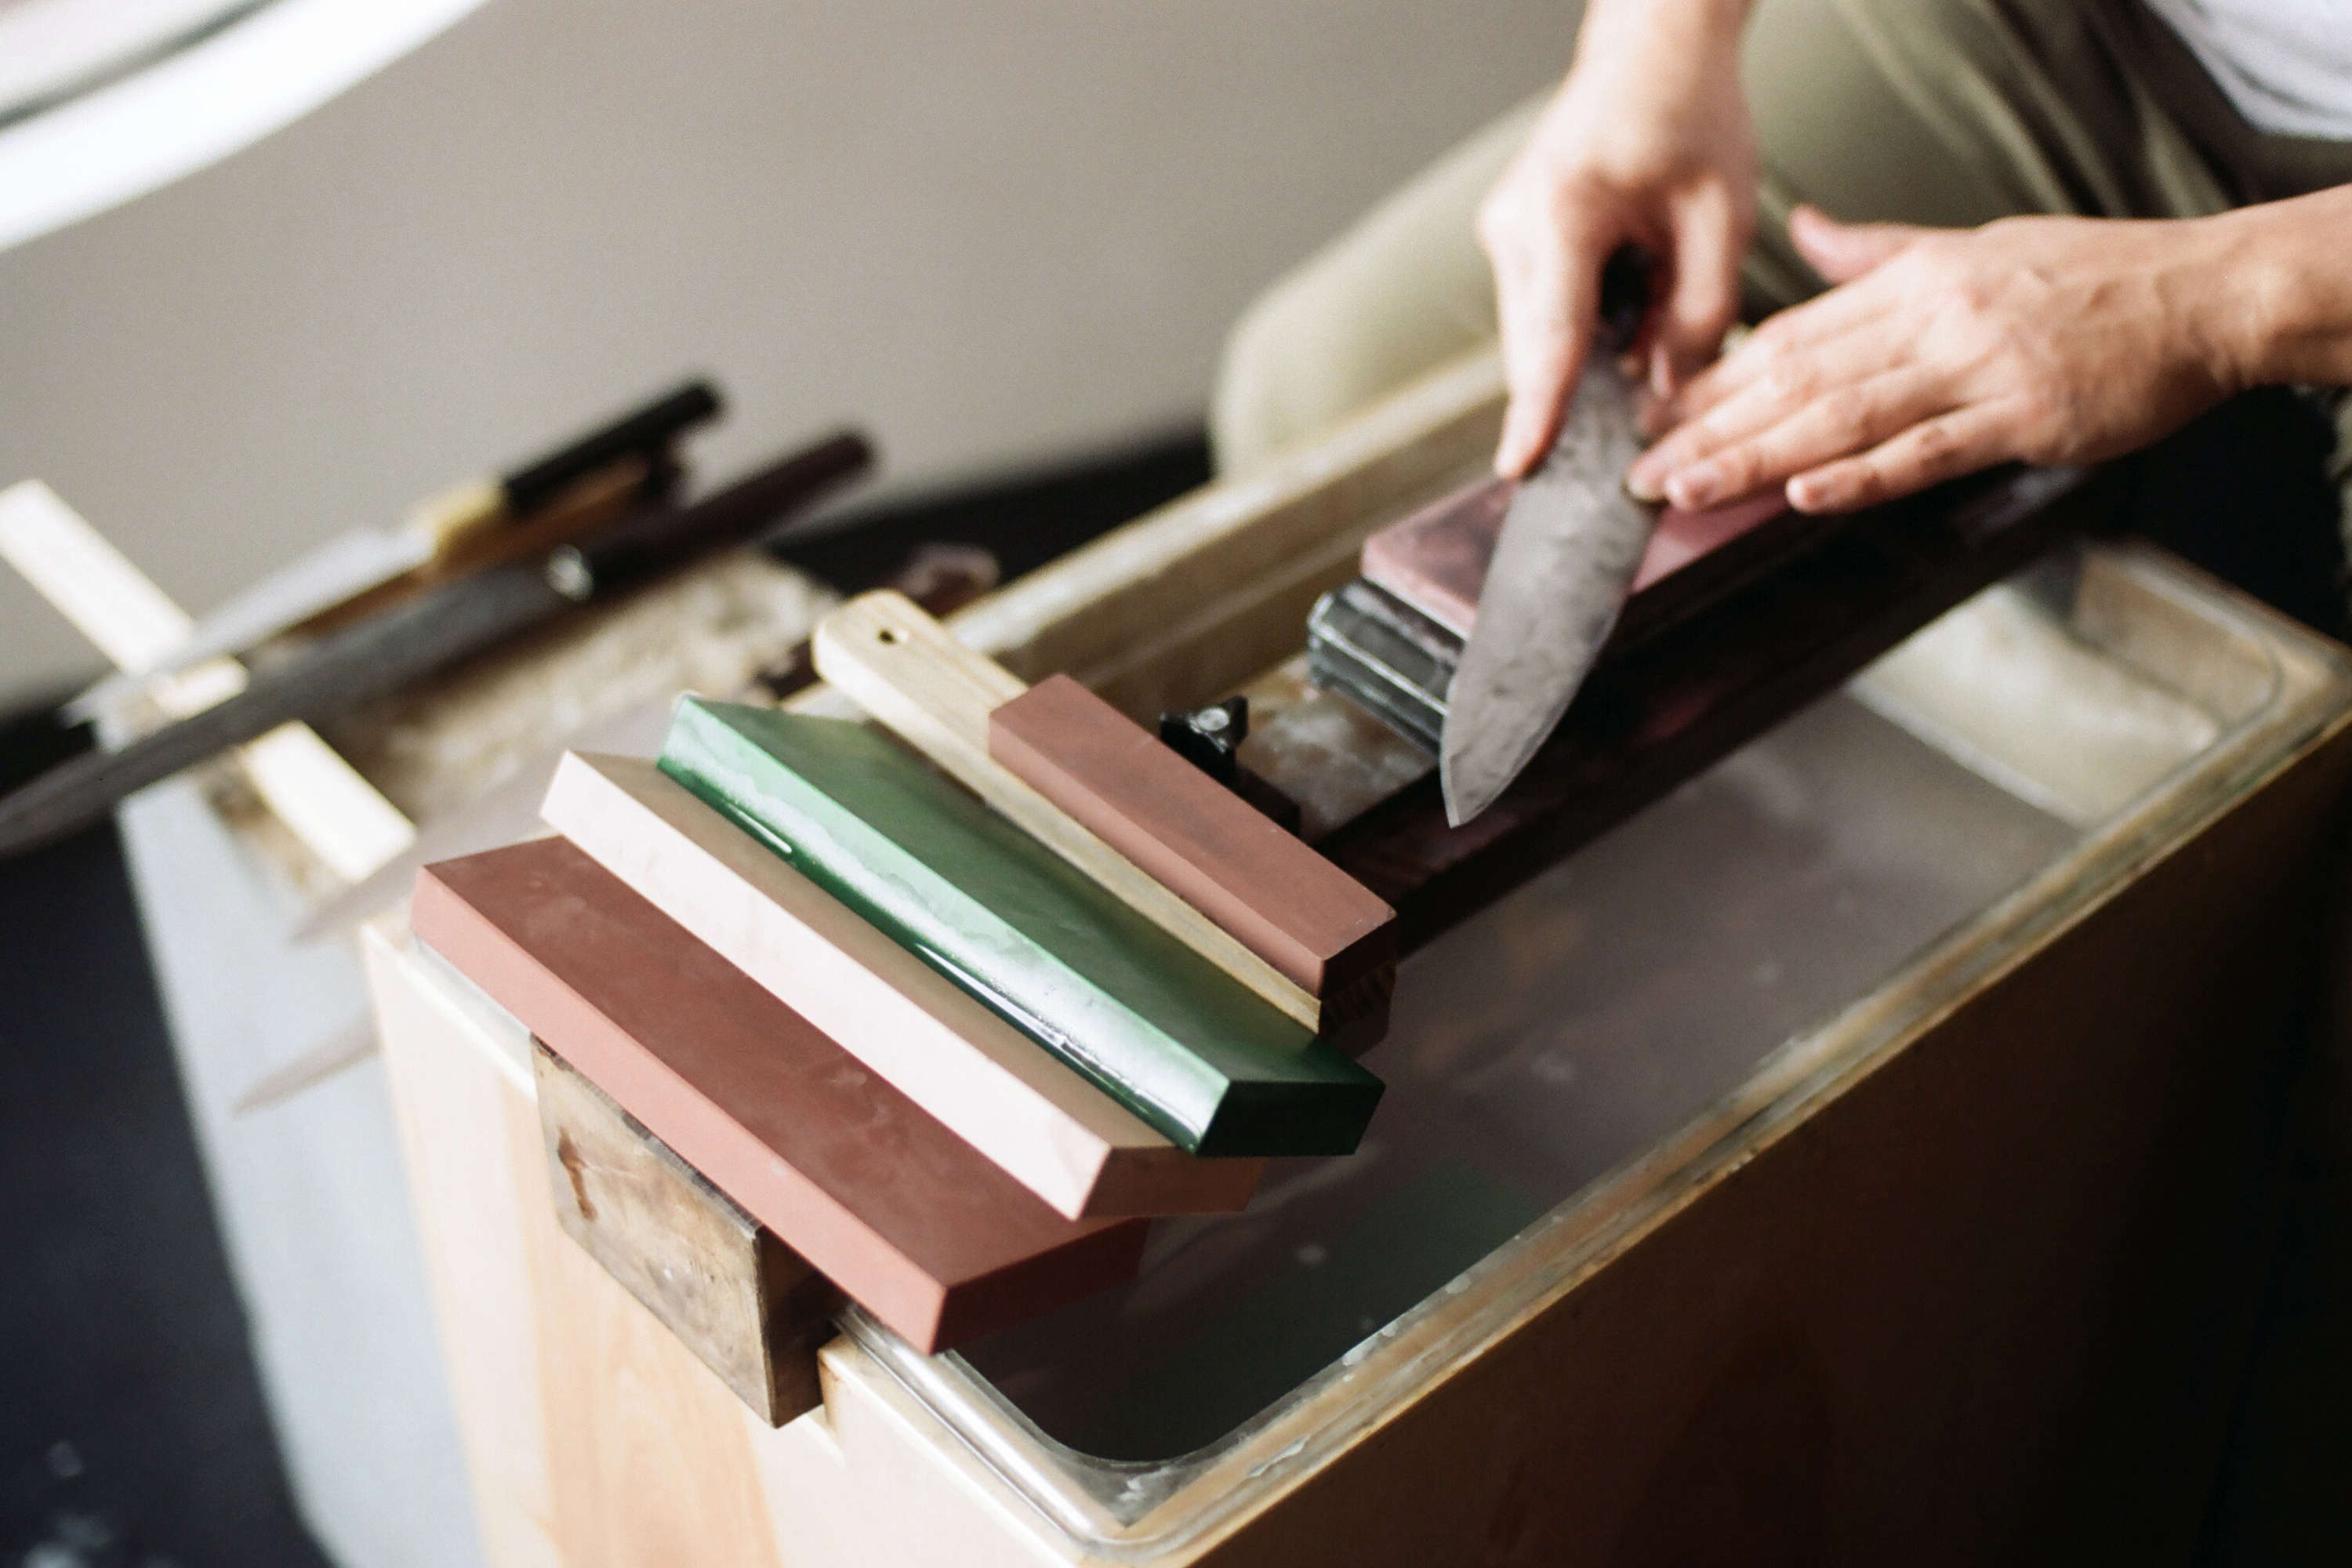 Knife-Making in Ai and Om Knife Shop by Scott and Scott Architects